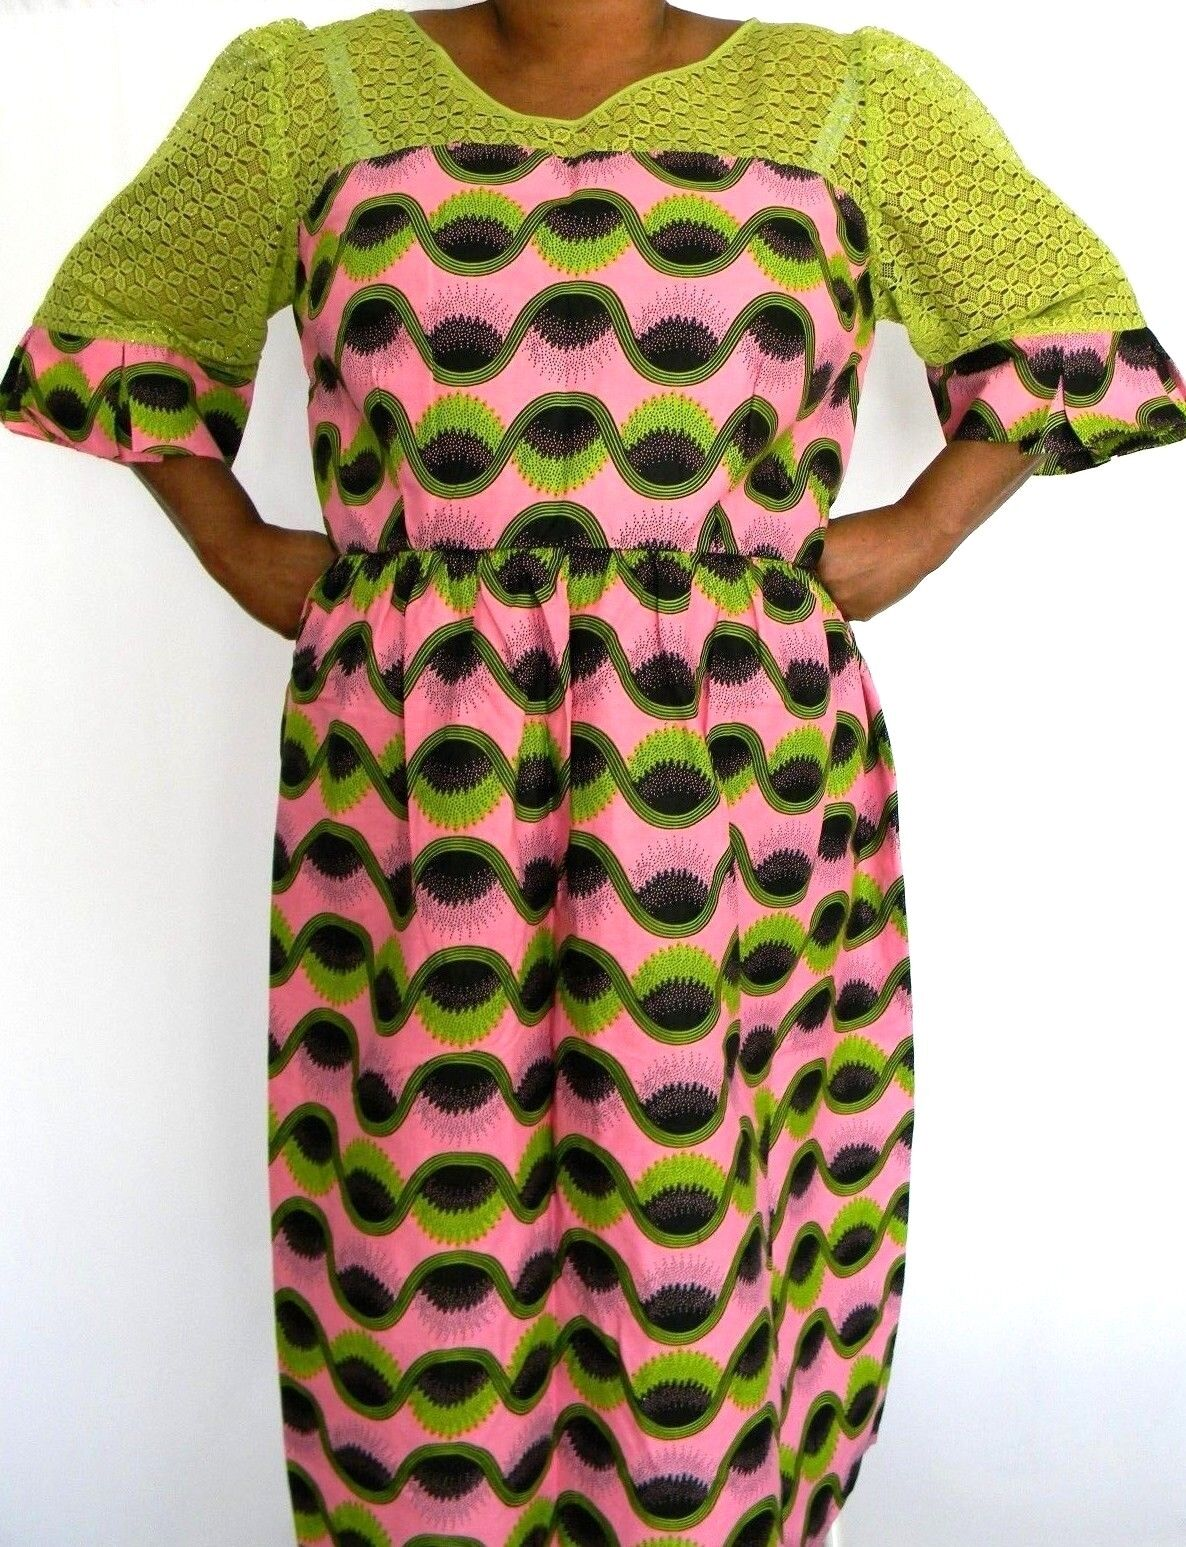 African Wax Größe XL Fit&Flare Dress damen Lace Top Bell Sleeve Zip Back Ankara